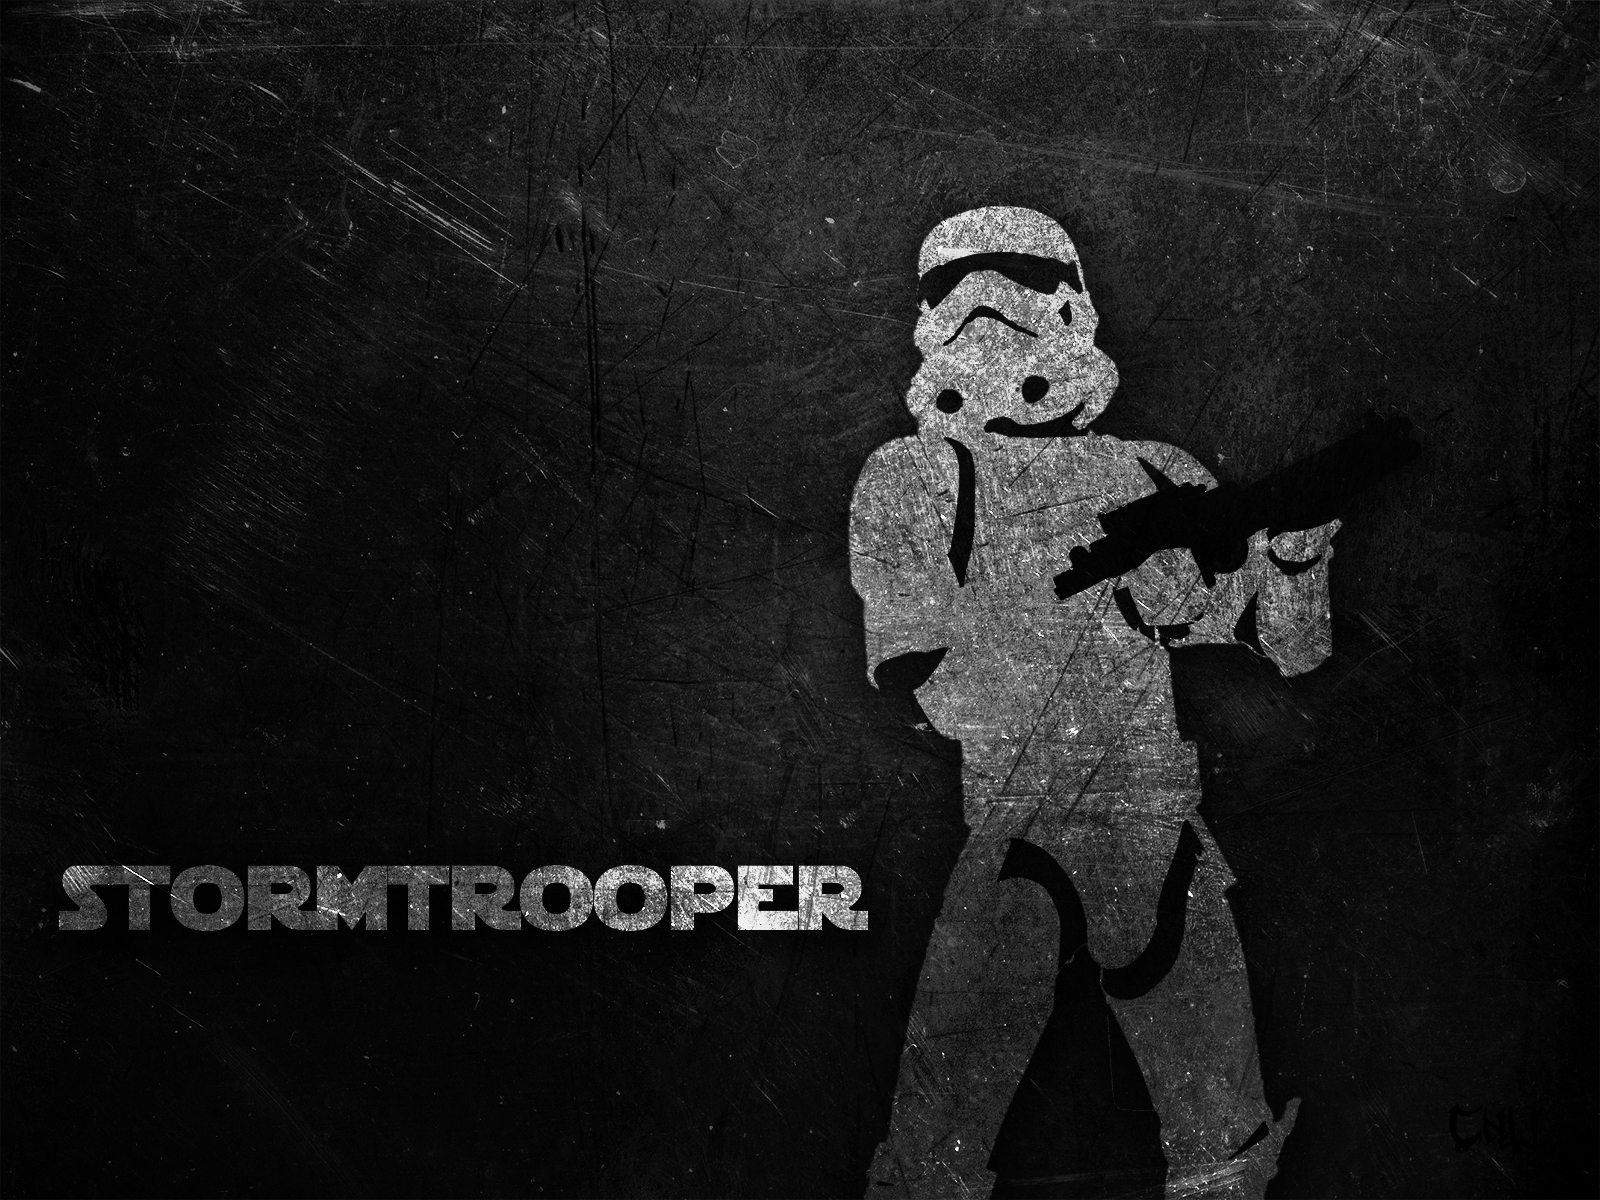 Star Wars Images Stormtrooper Wallpaper HD And Background Photos